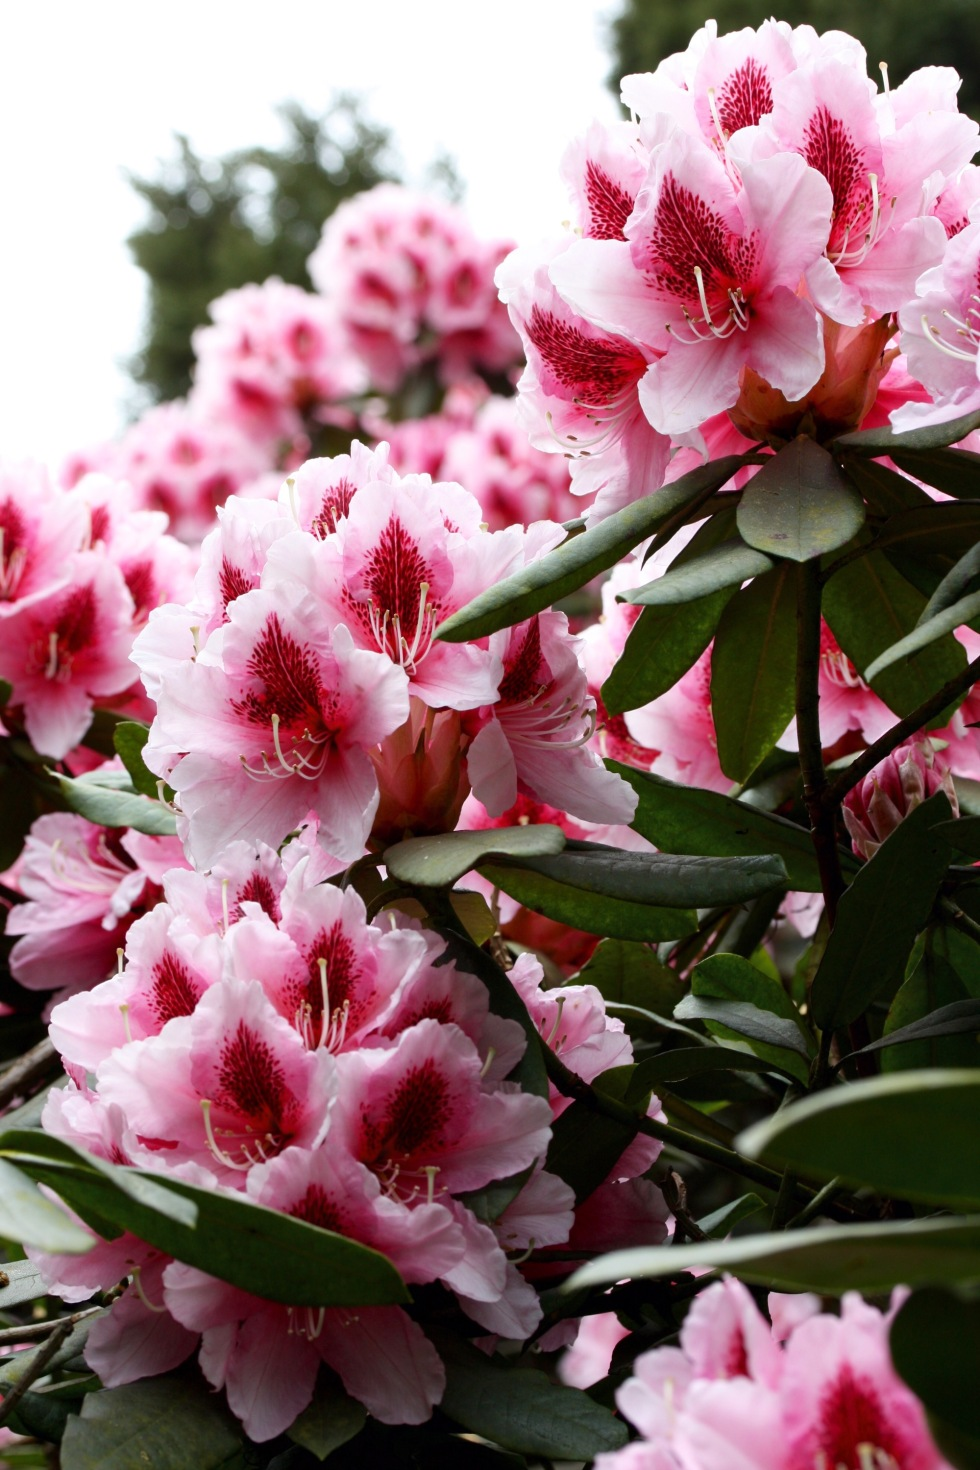 Rhododendron, The American Garden, May 2015